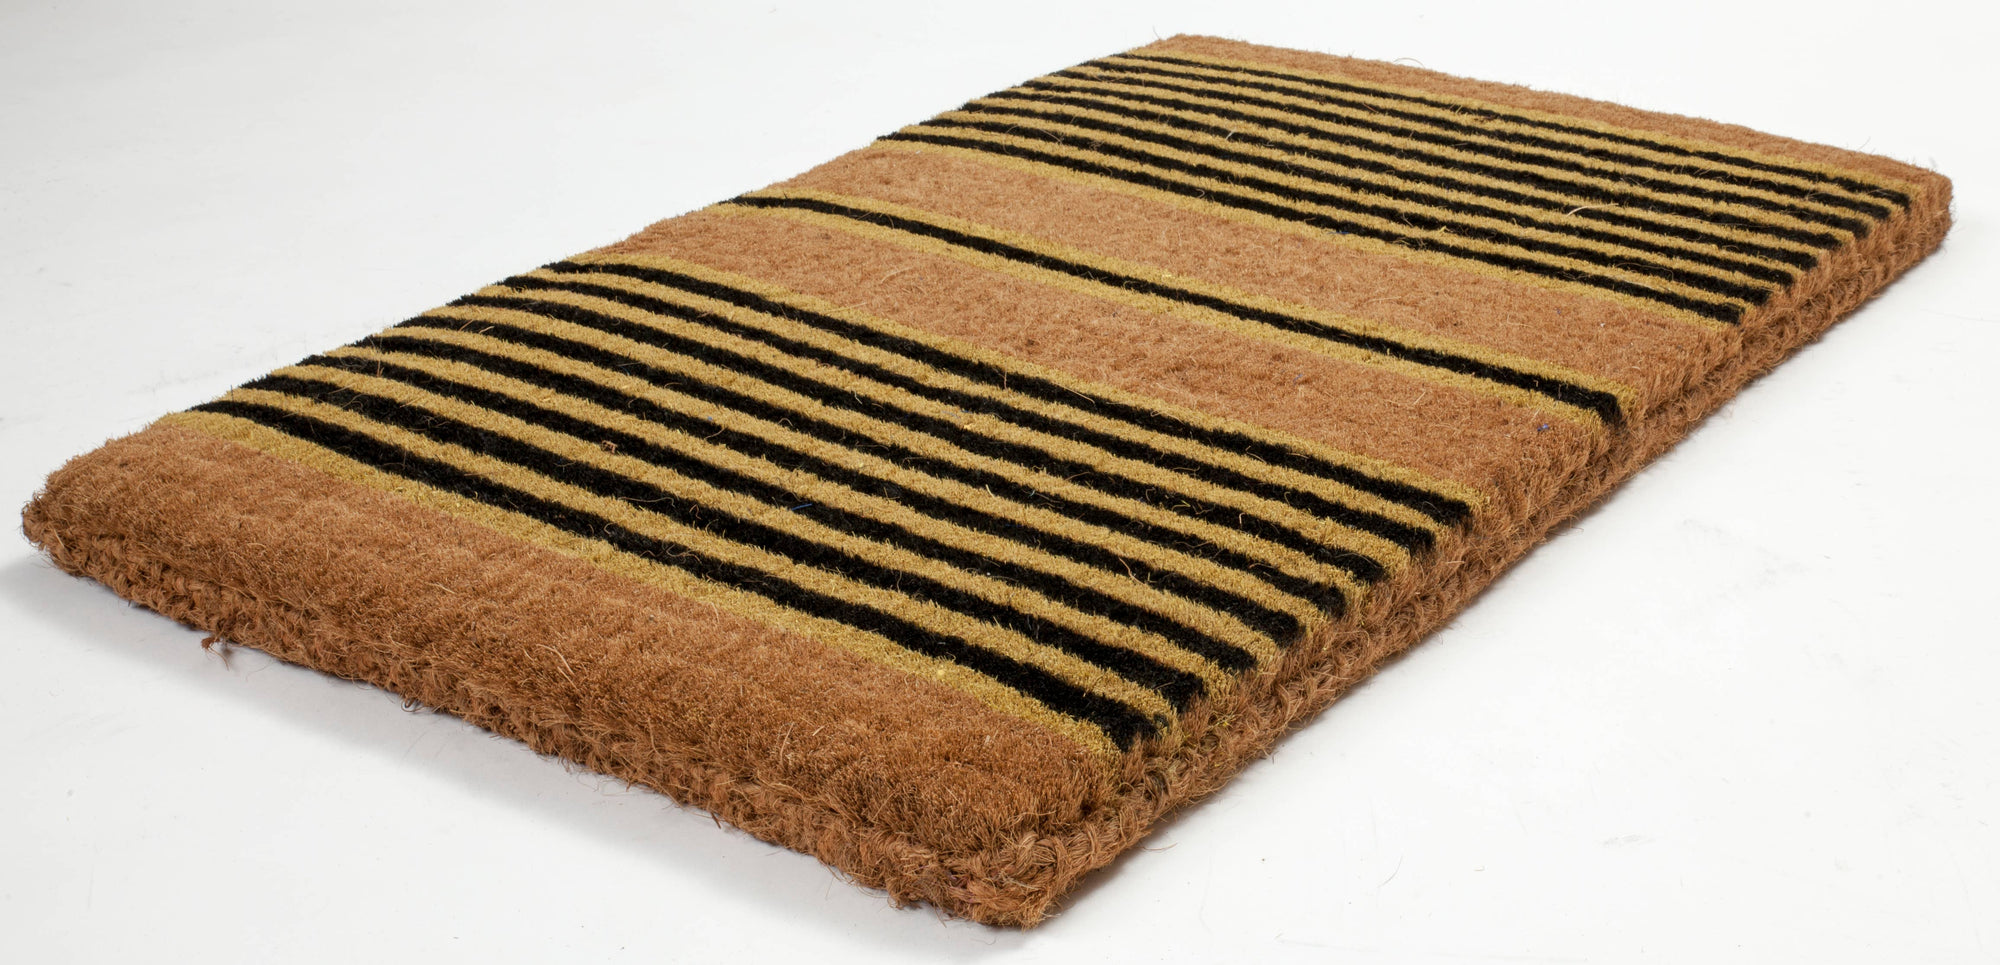 Ticking Stripes Extra-Thick Handwoven Coconut Fiber Doormat